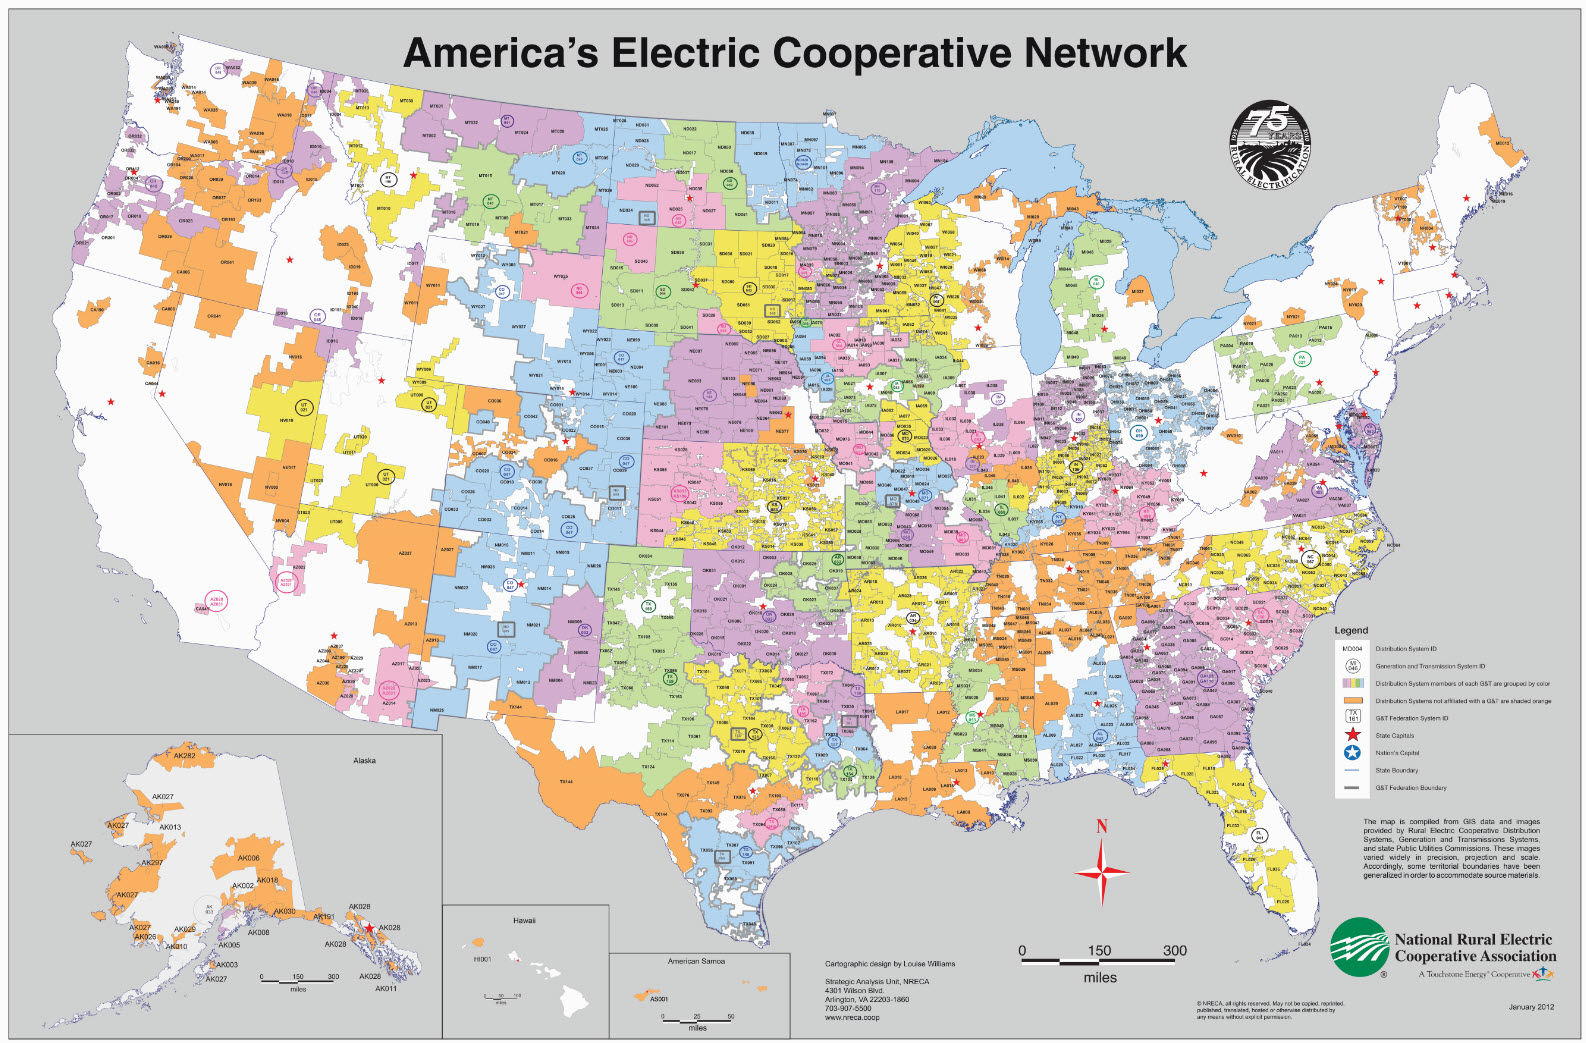 National Rural Electrical Co-op Assoc. Map